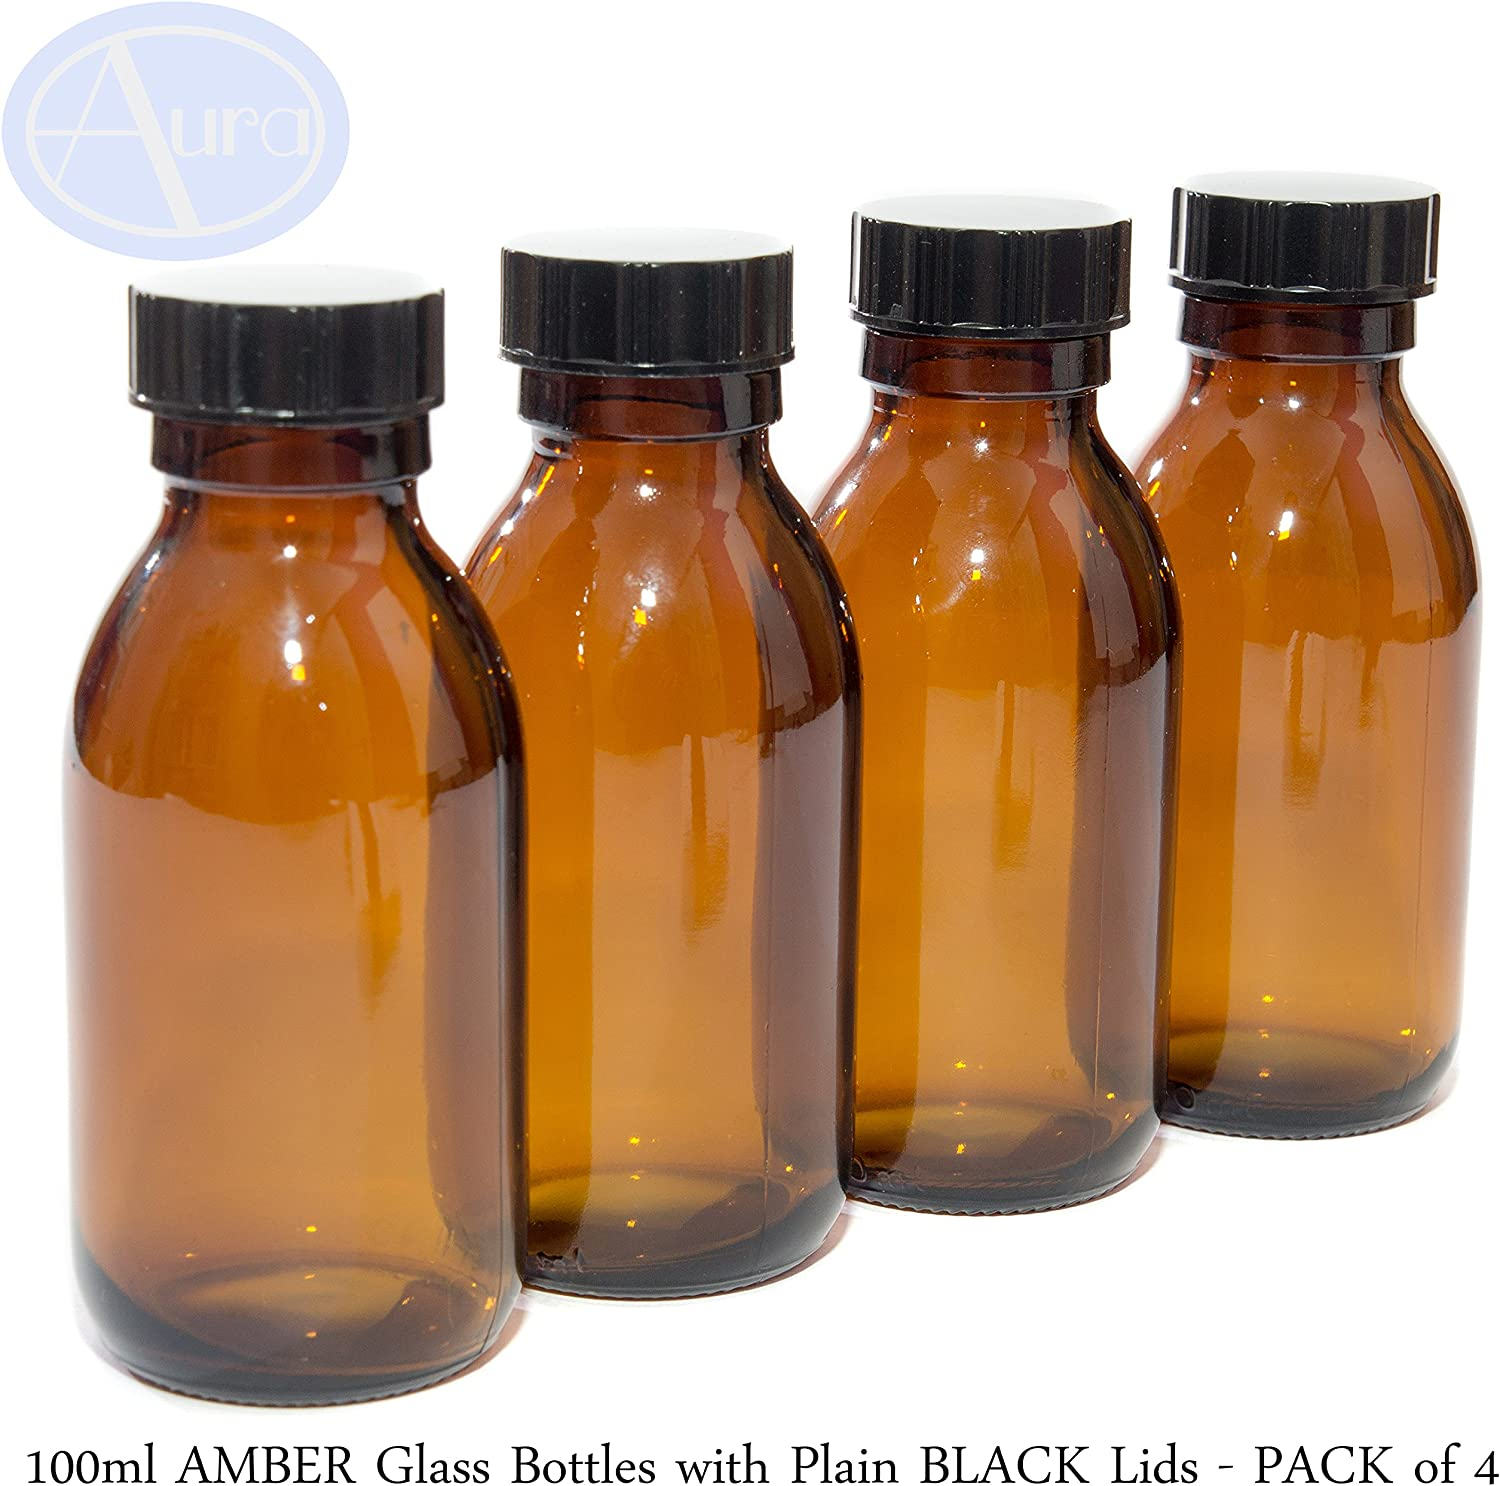 PACK of 4 - 100ml AMBER GLASS Bottles with BLACK Lids.